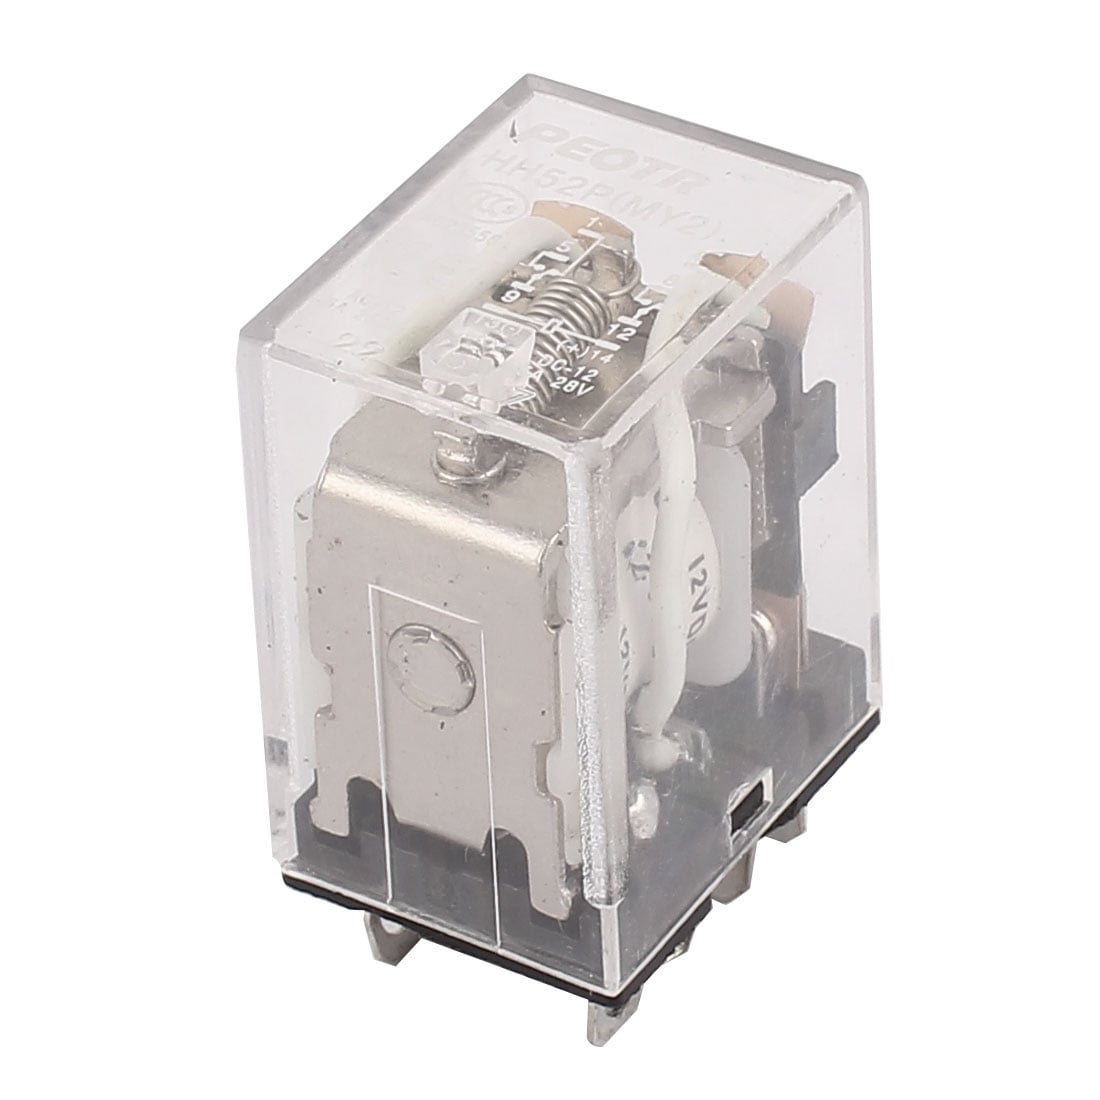 Shop Dc12v 5a Coil Voltage 8 Pin Terminal Dpdt Electromagnetic Power Relay Spdt 12v Free Shipping On Orders Over 45 18251044